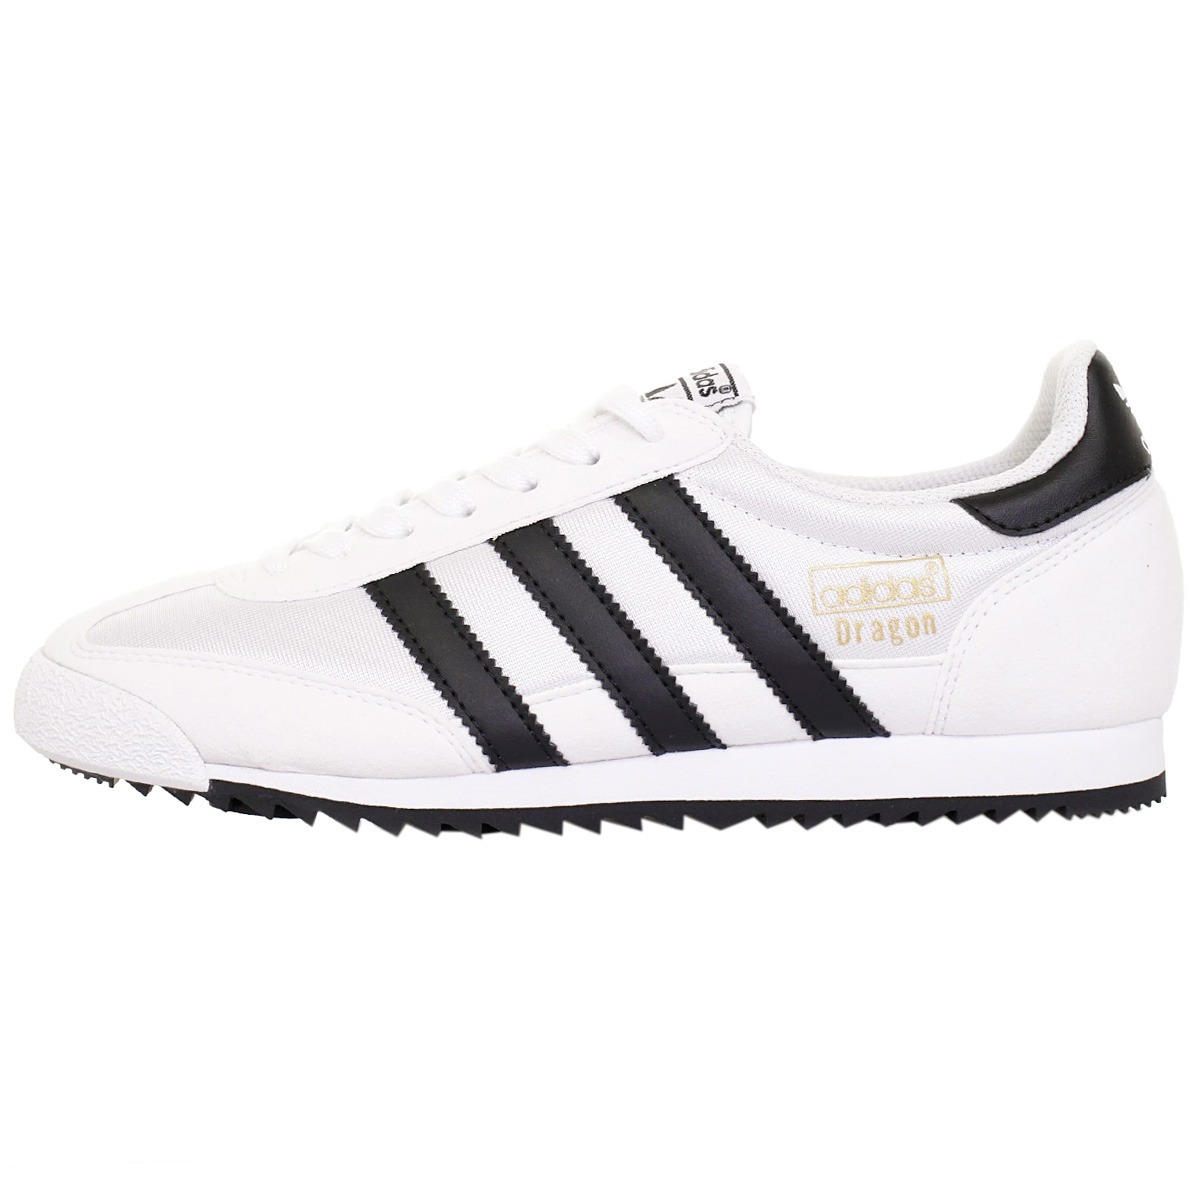 8c044eb646a Tenis Casual adidas adidas Originals Dragon Og Bb1270 -   979.00 en ...